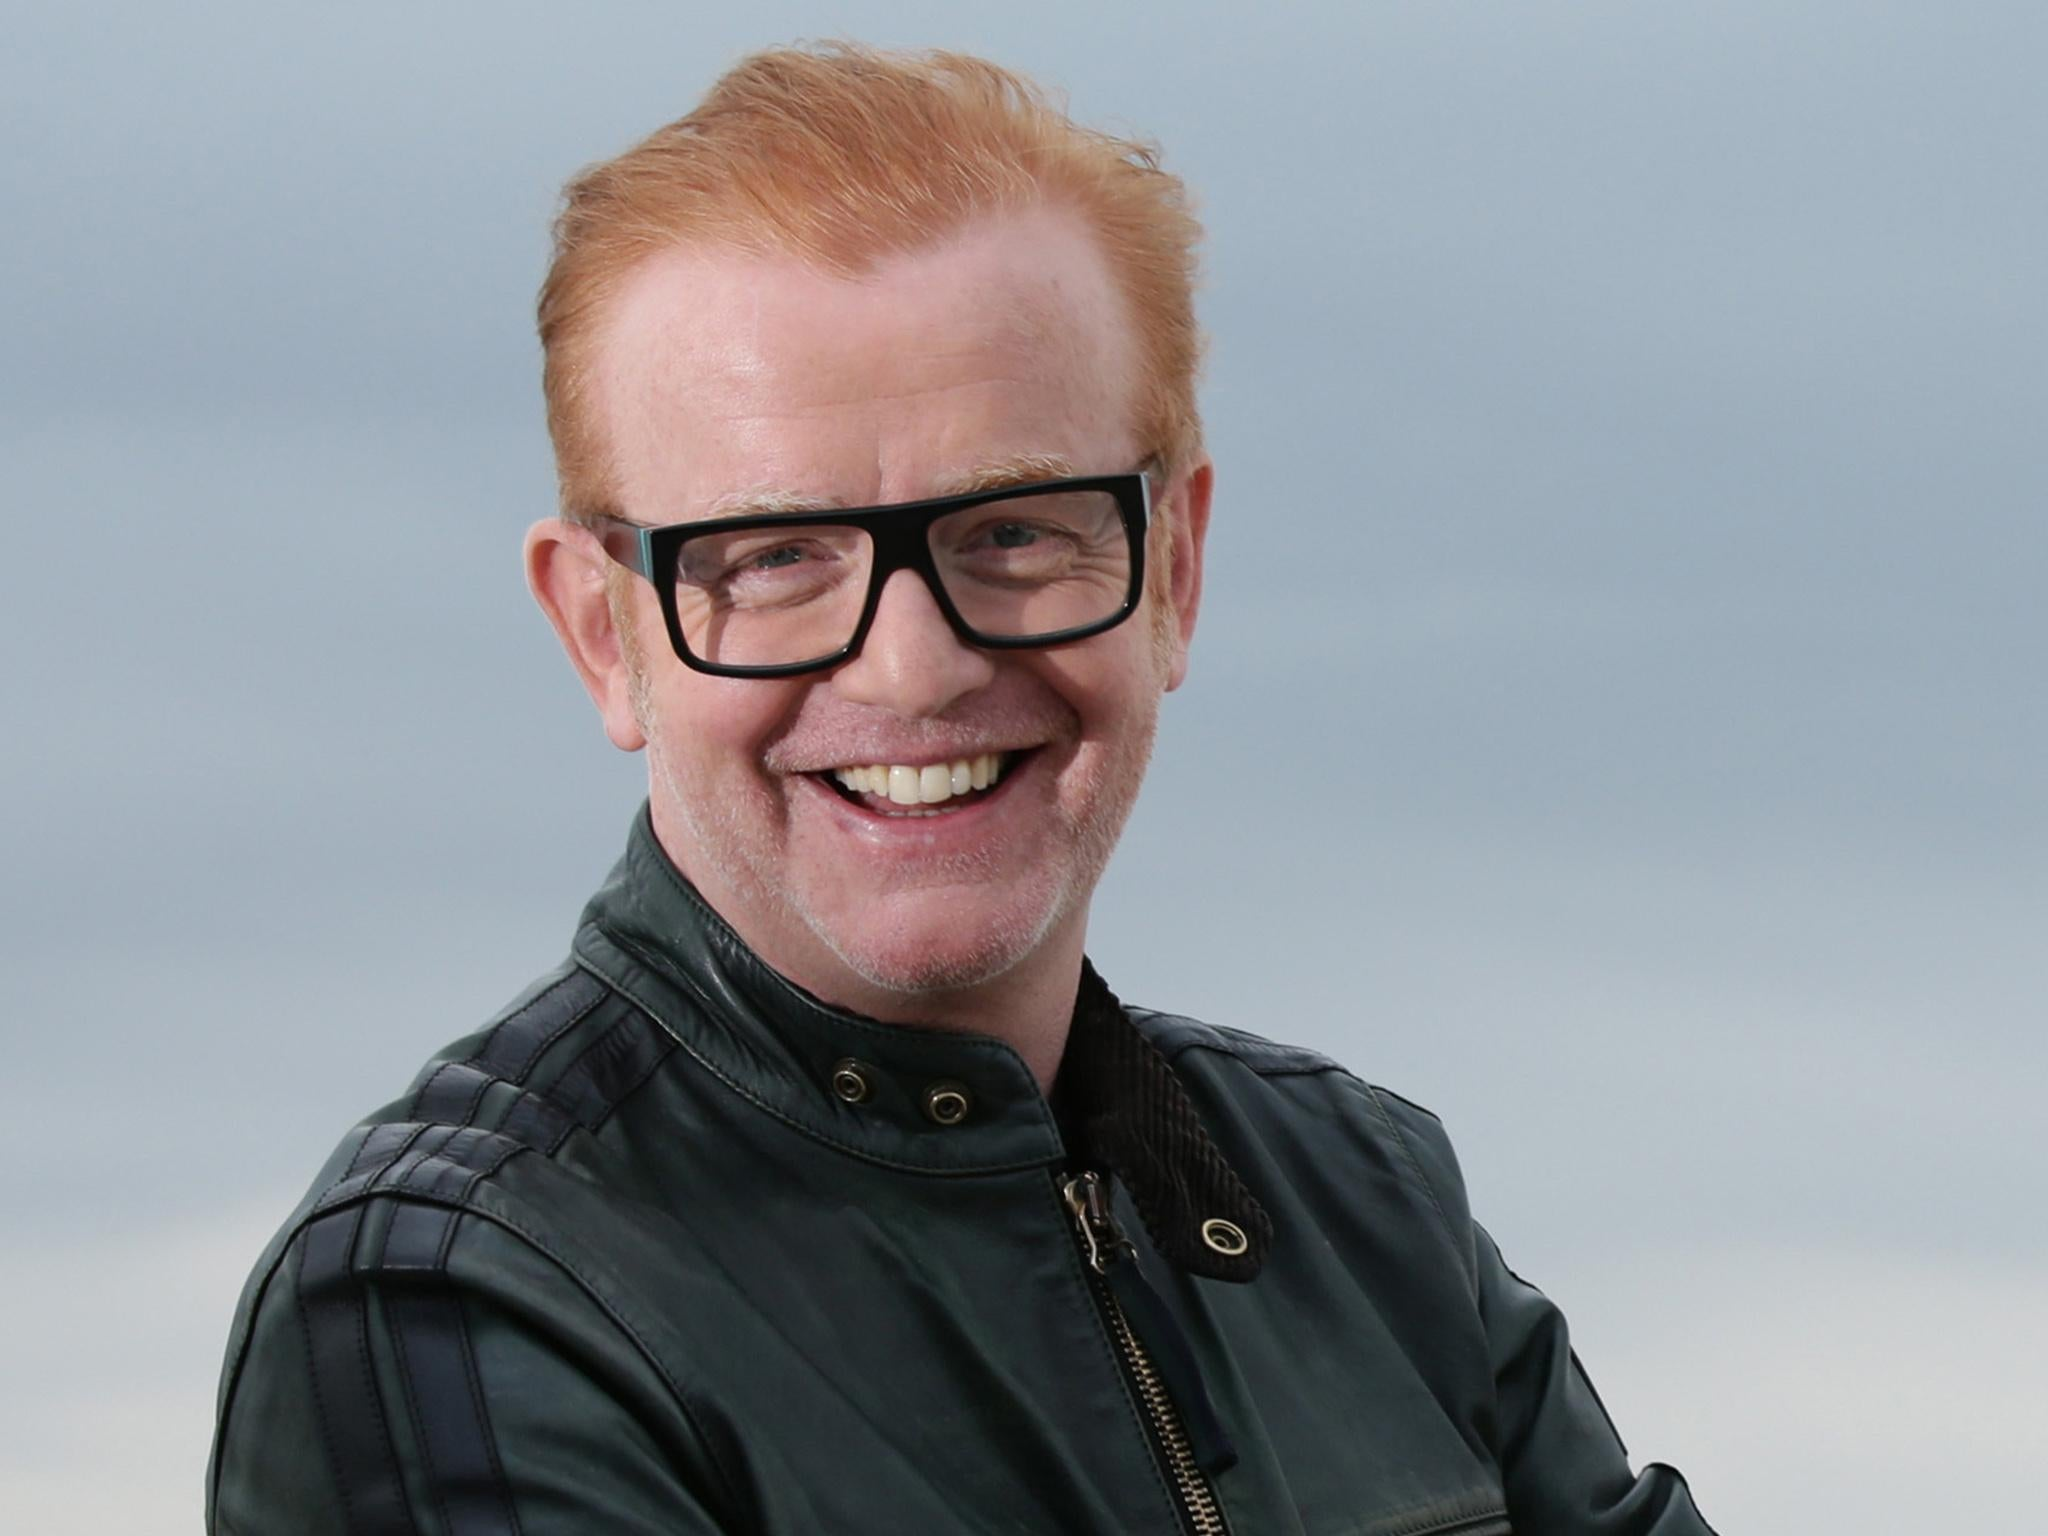 pictures Radio 2's Chris Evans and wife announce they are expecting twins after IVF treatment